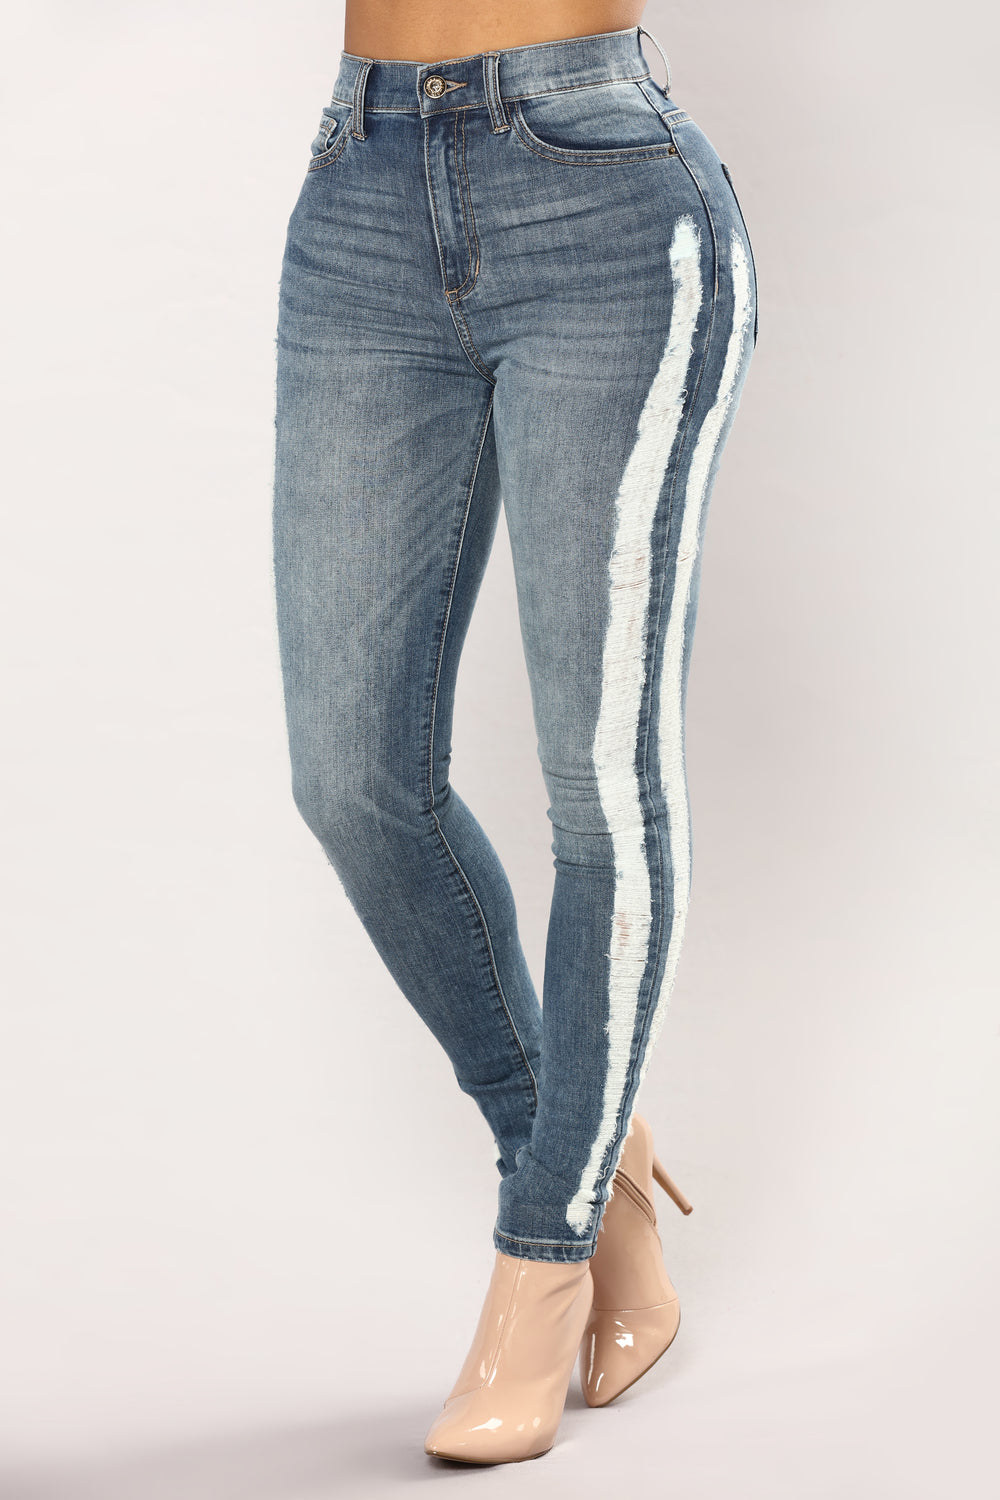 I'm So Into You Skinny Jeans - Medium Blue Wash